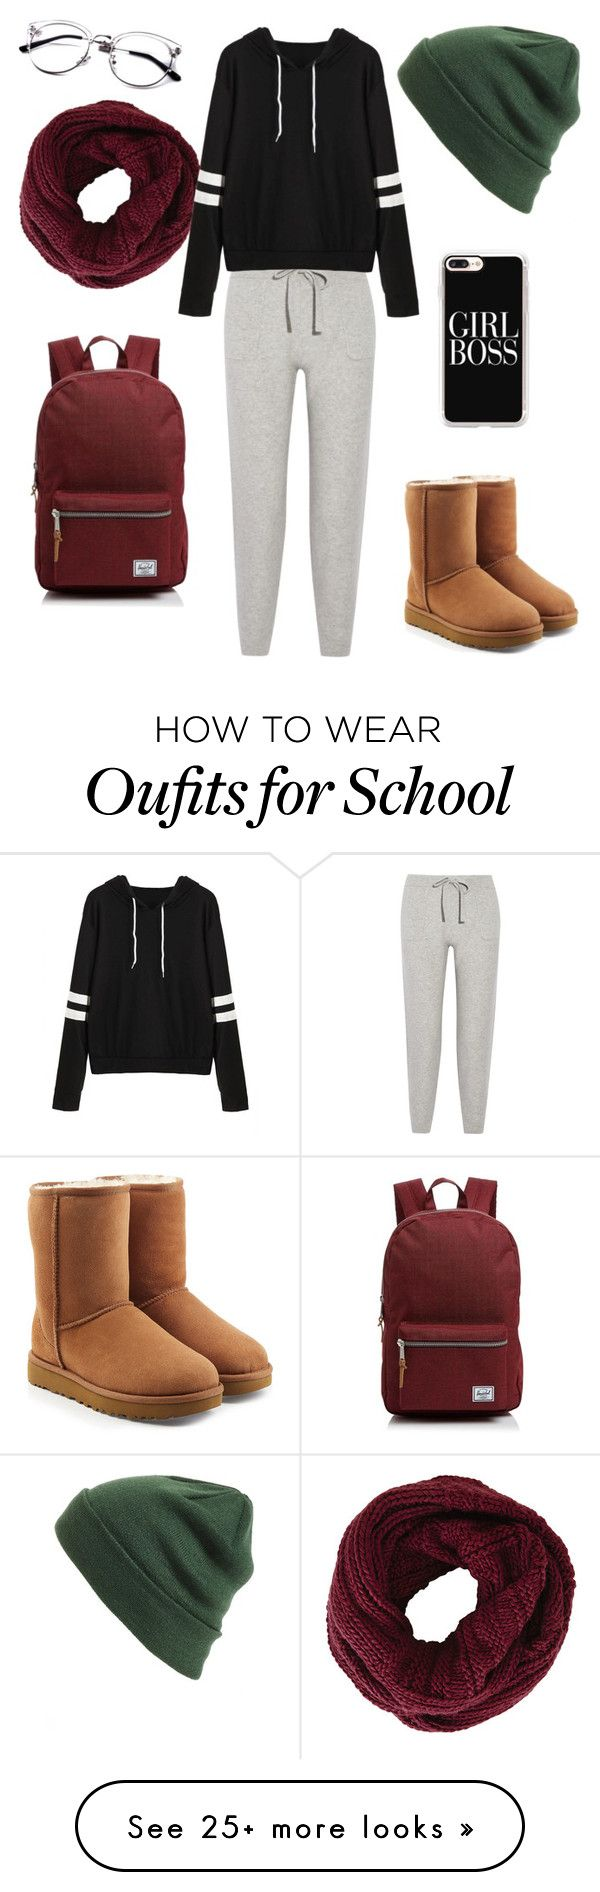 """""""Cozy School Outfit"""" by lampron7 on Polyvore featuring BP., Casetify, Herschel Supply Co., BCBGMAXAZRIA, UGG and Allude"""